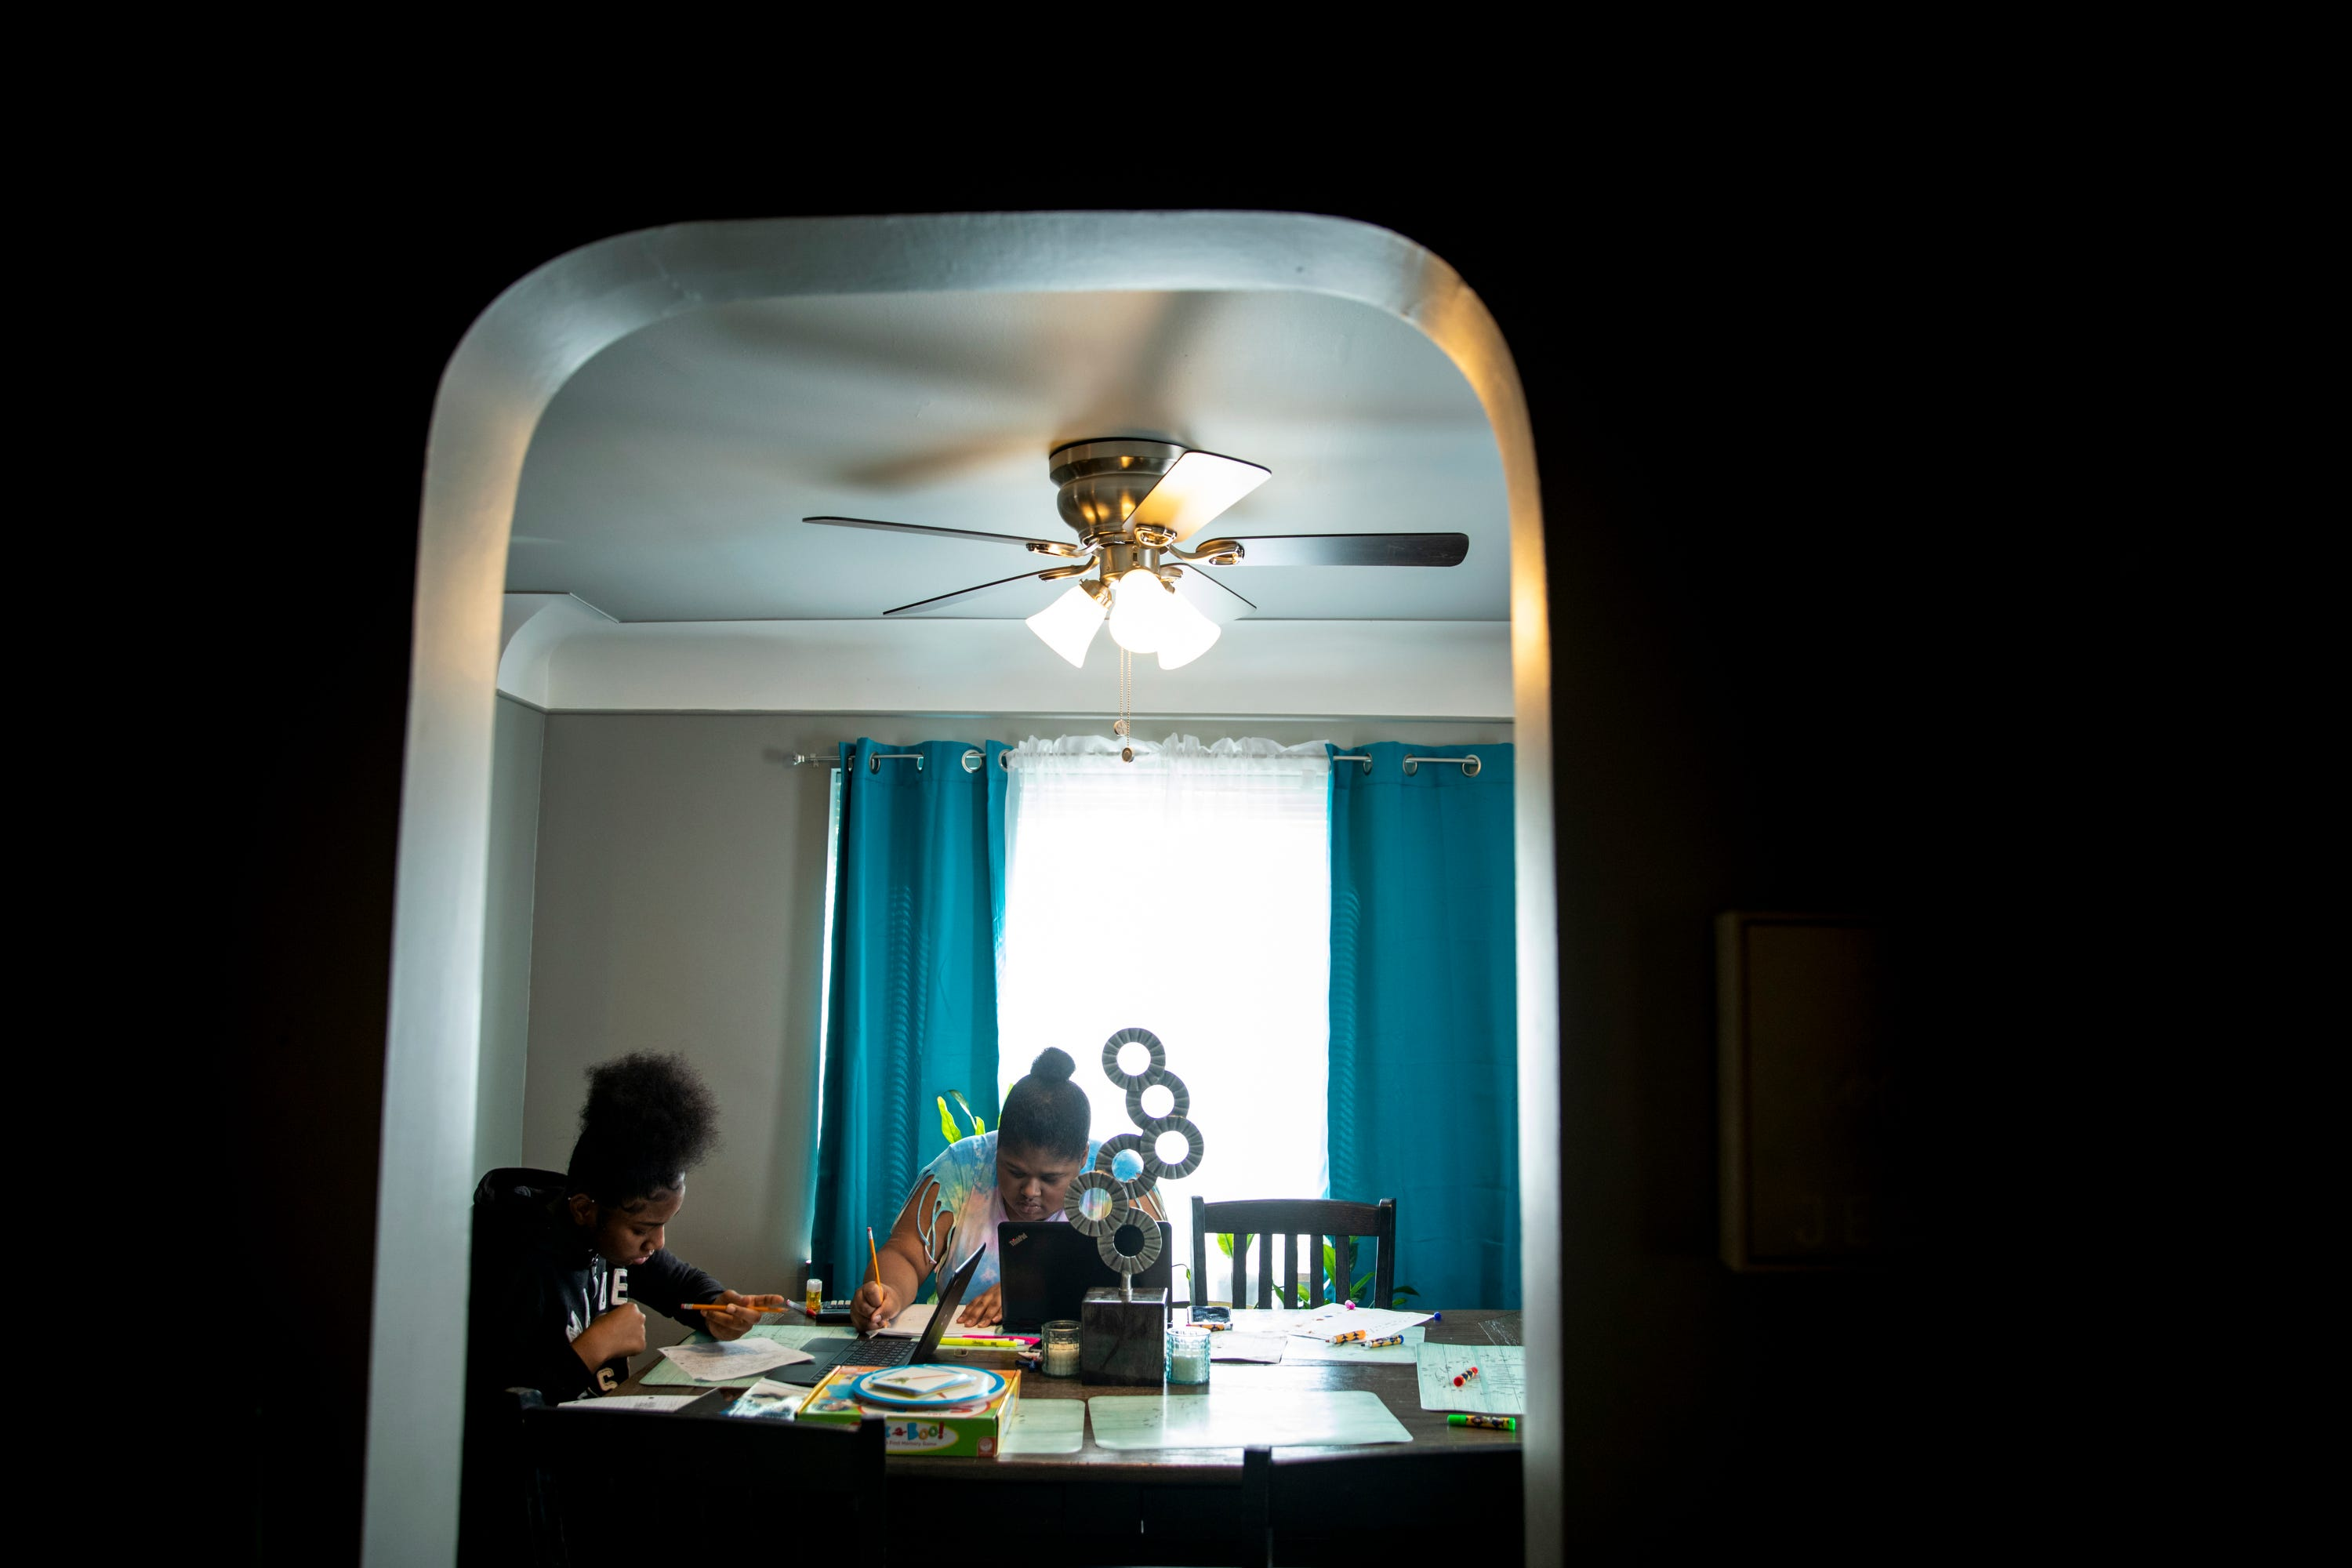 Sisters Destiny Taylor, 12, and Curiah Simpson, 18, work on their school work at the dining room table in their home in North College Hill on Thursday, April 2, 2020. Destiny is in the seventh grade at Mt. Healthy Jr. High School. Simpson is a senior at Diamond Oaks.